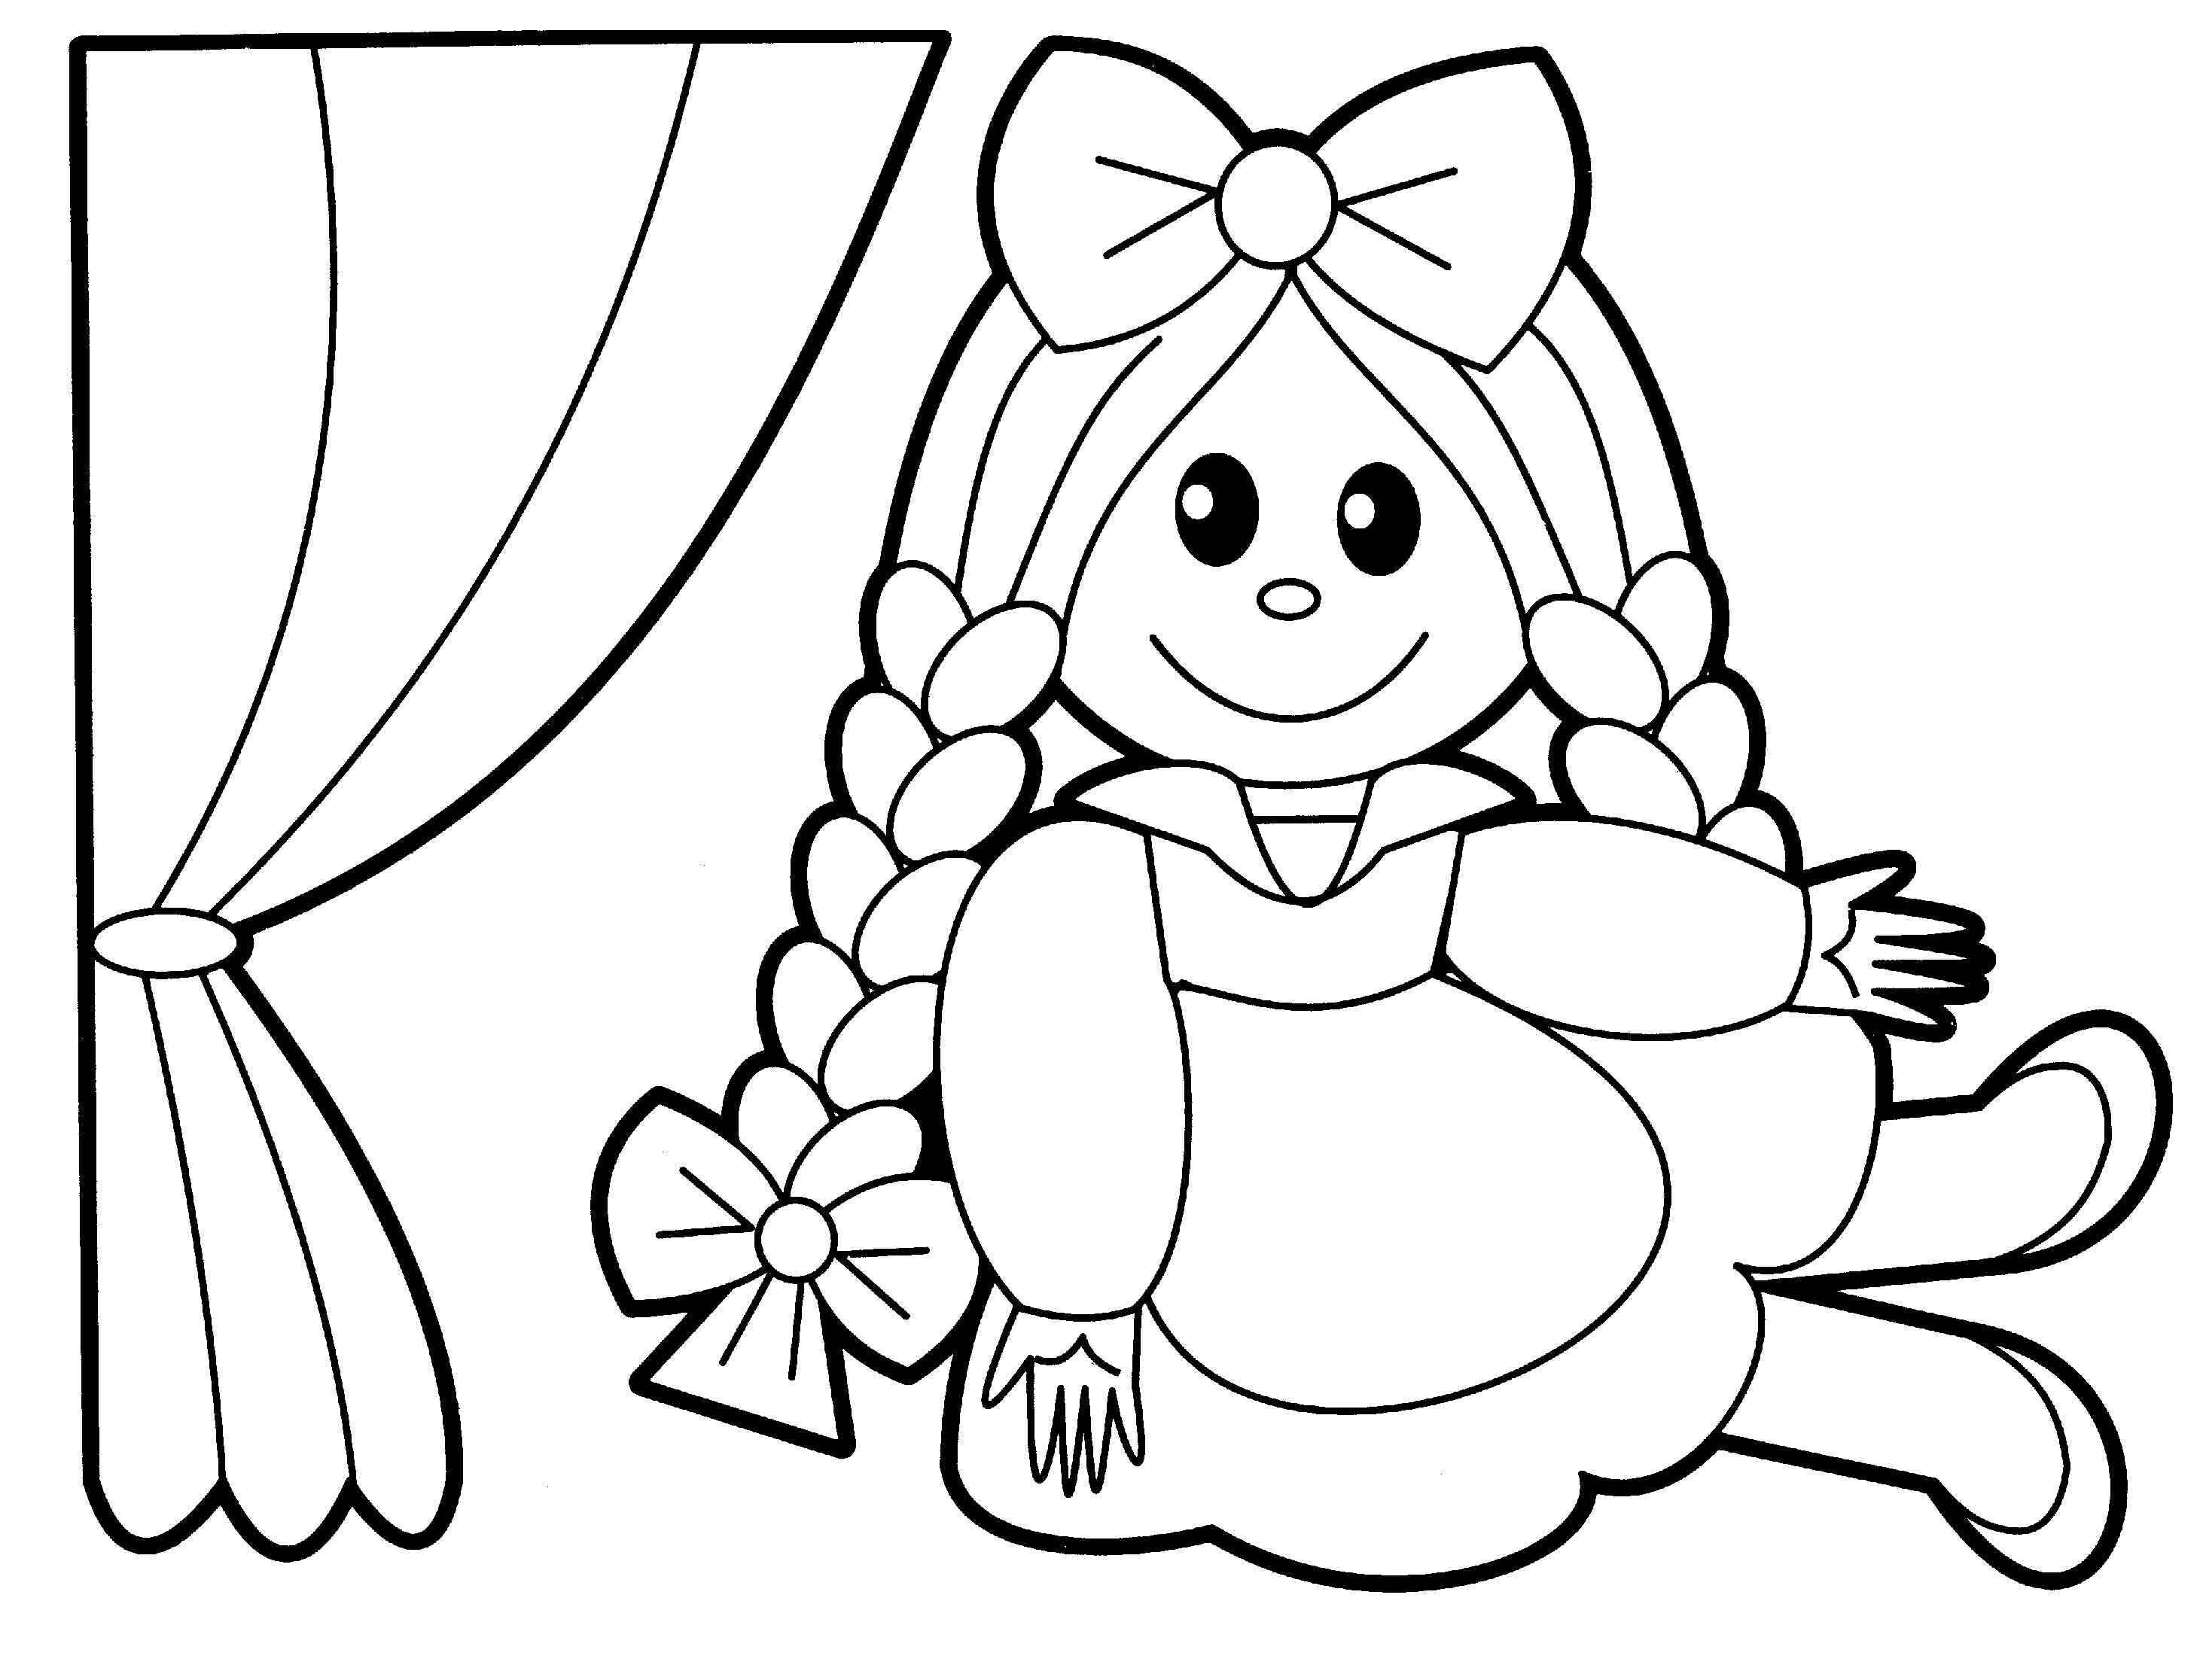 2930x2232 I Love You Baby Coloring Pages New Free Printable Lol Surprise